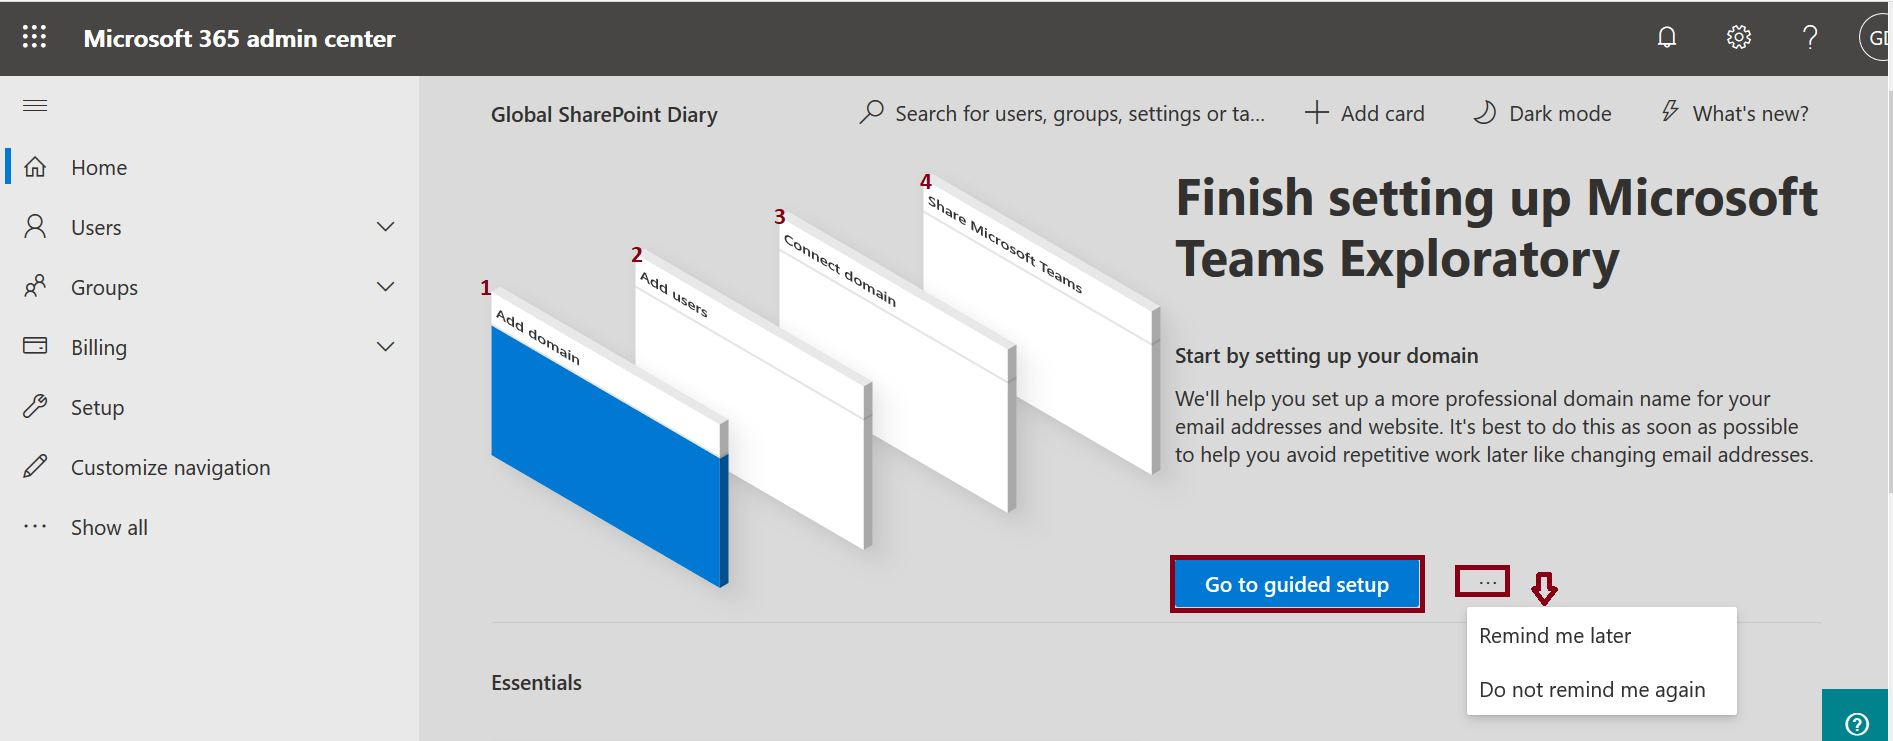 Finish setting up ‎Microsoft Teams Exploratory‎ steps